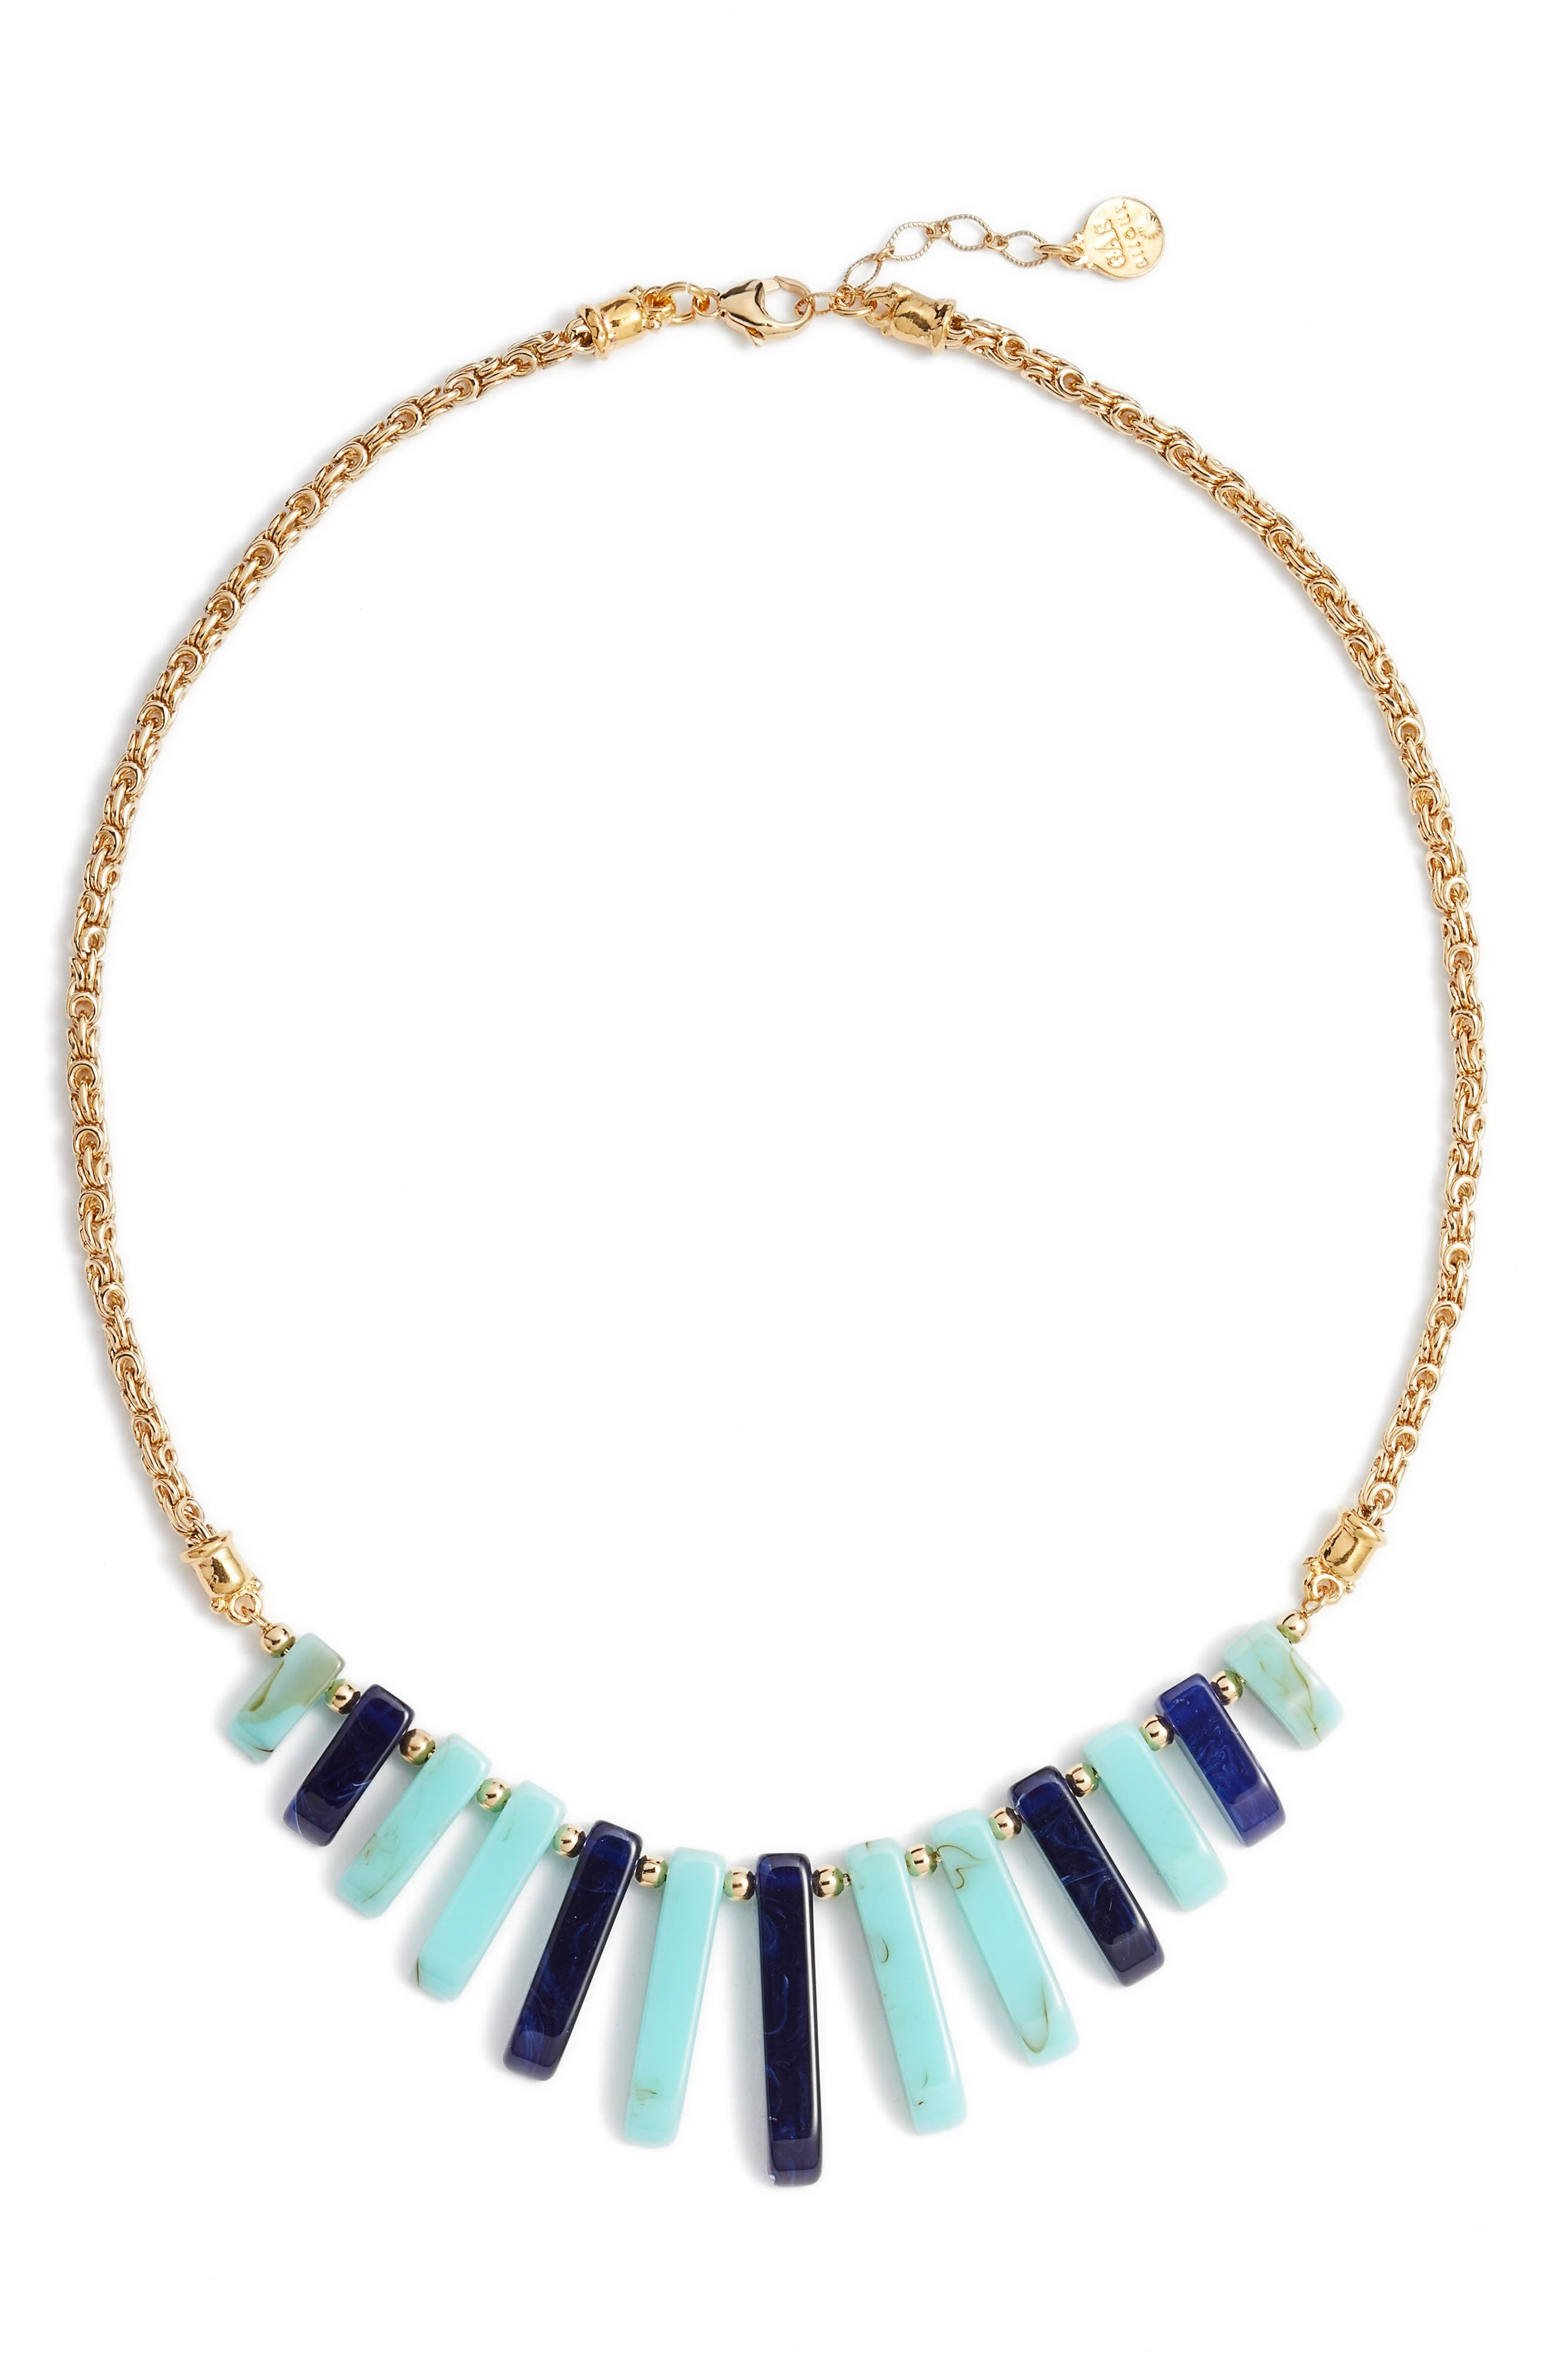 Cascade Bib Necklace,                             Main thumbnail 1, color,                             BLUE